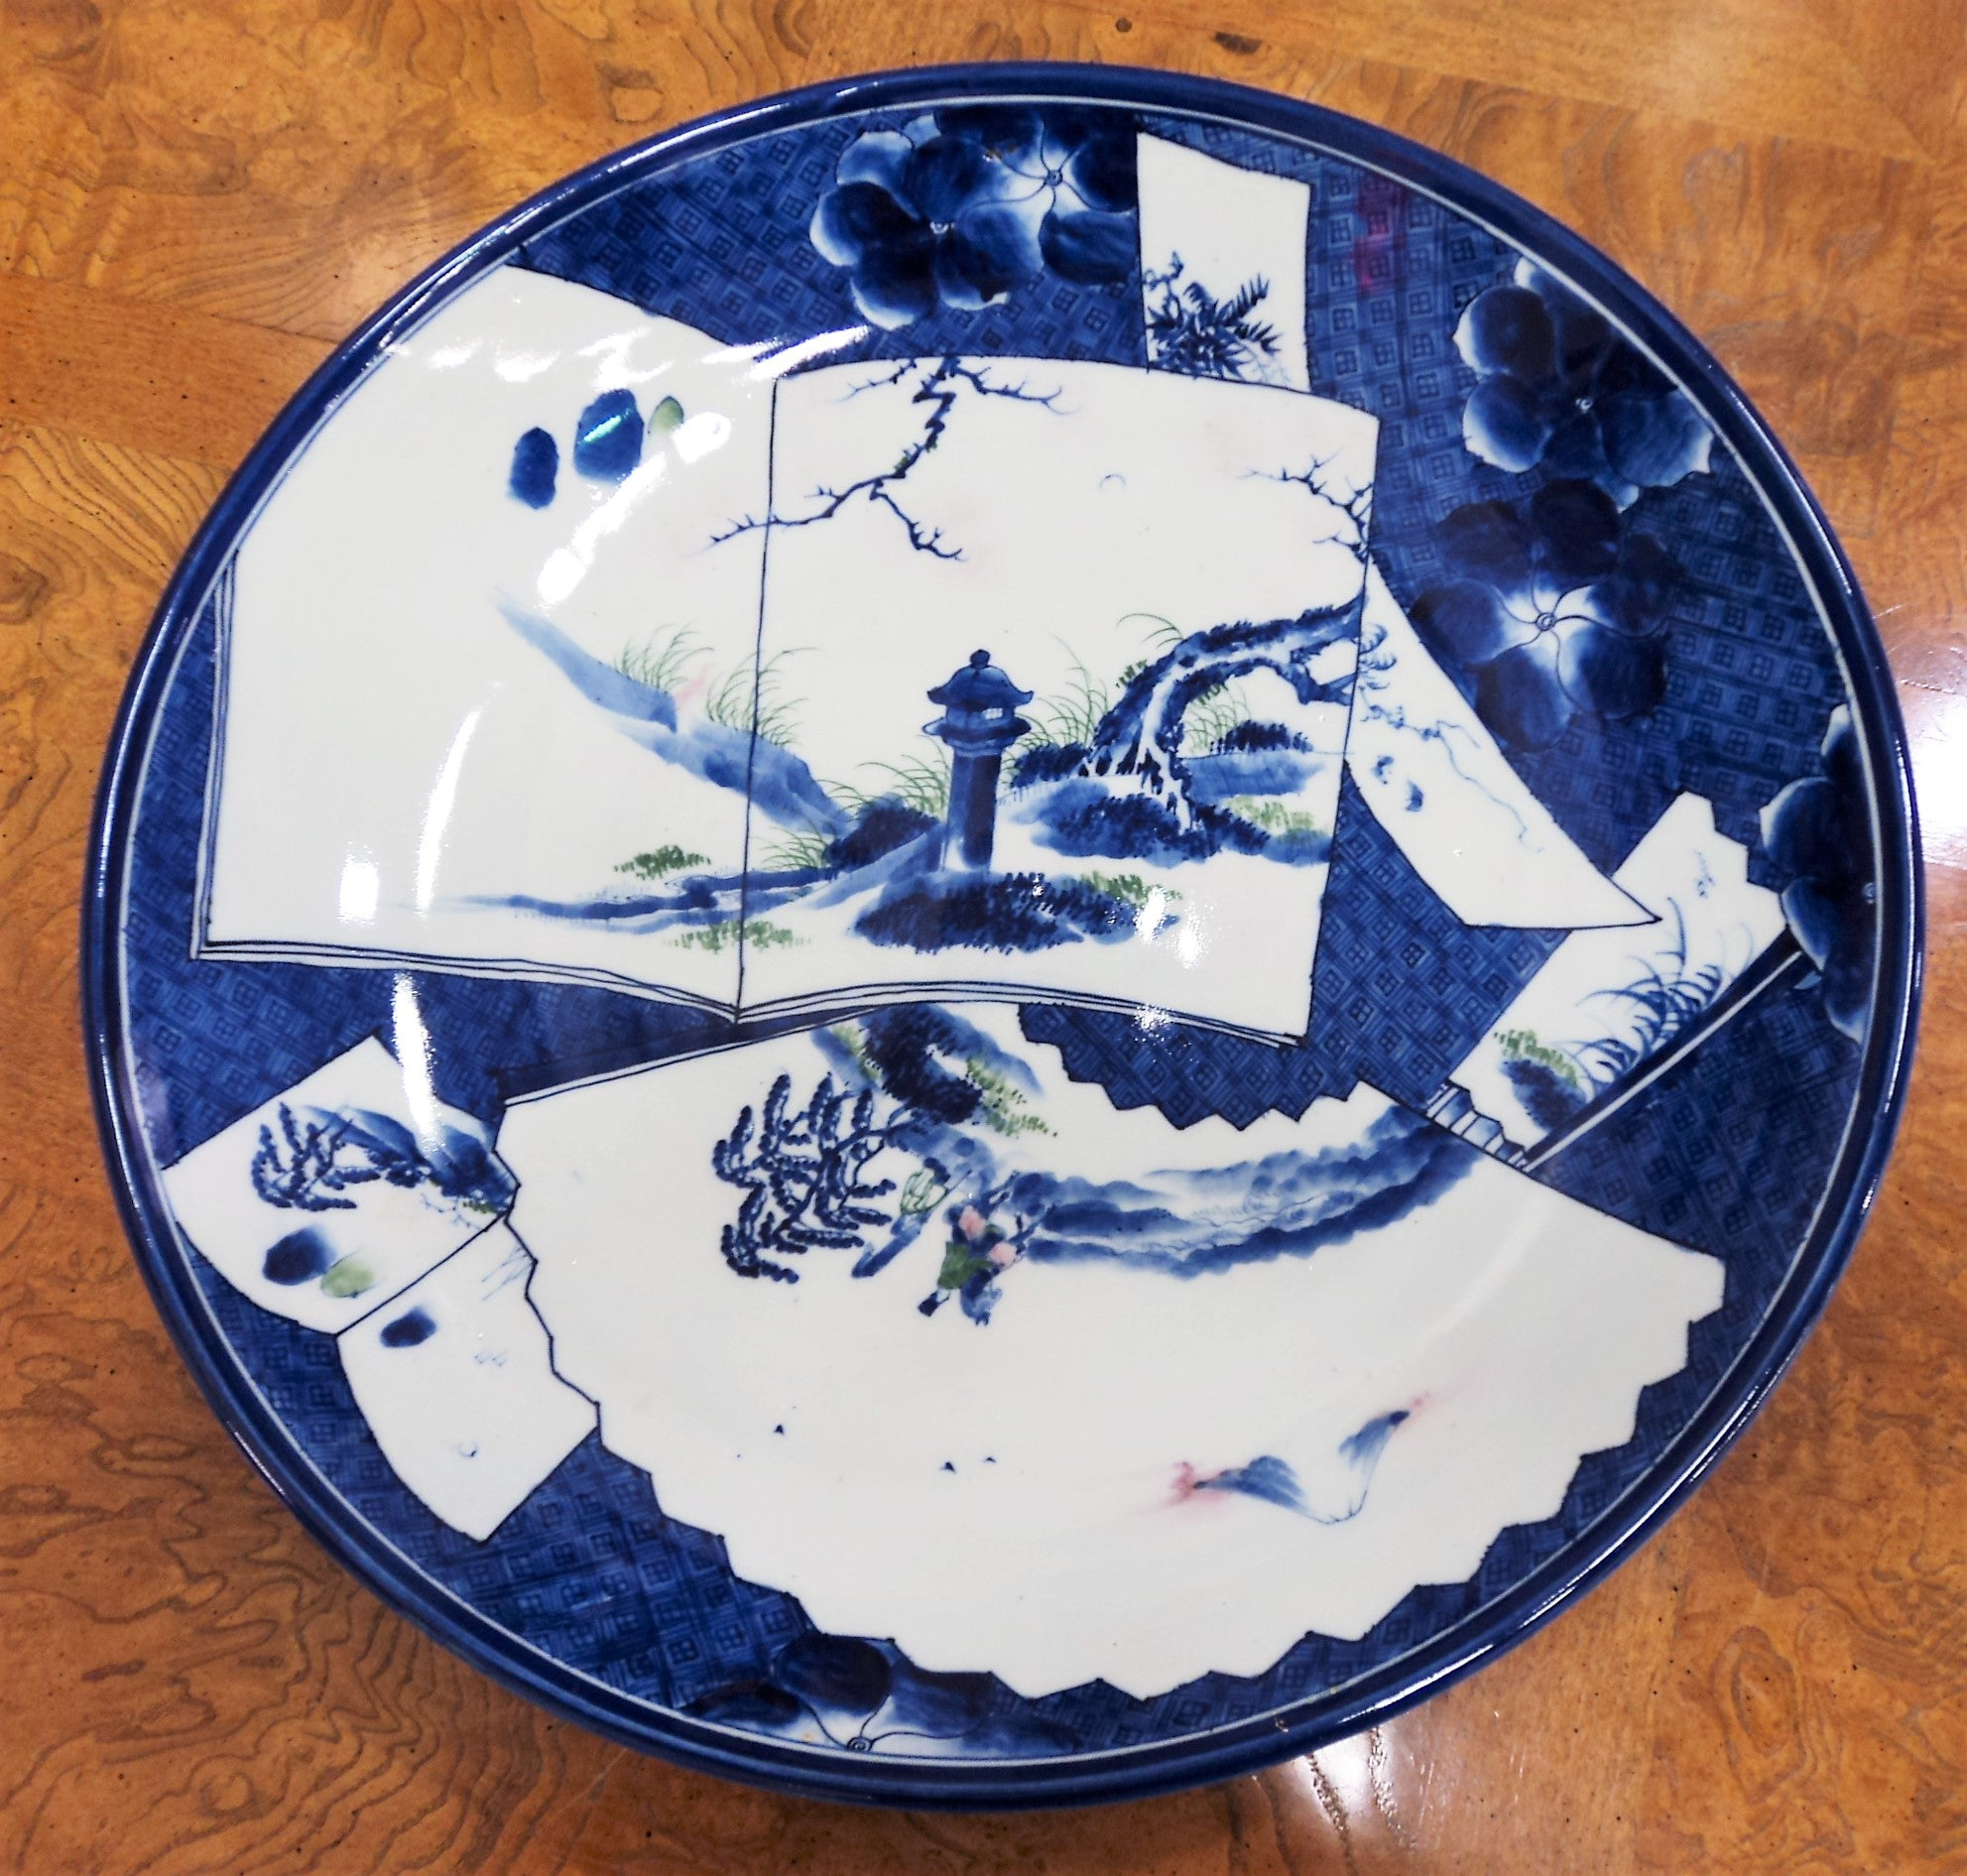 20th C. Japanese Porcelain Charger with Landscape